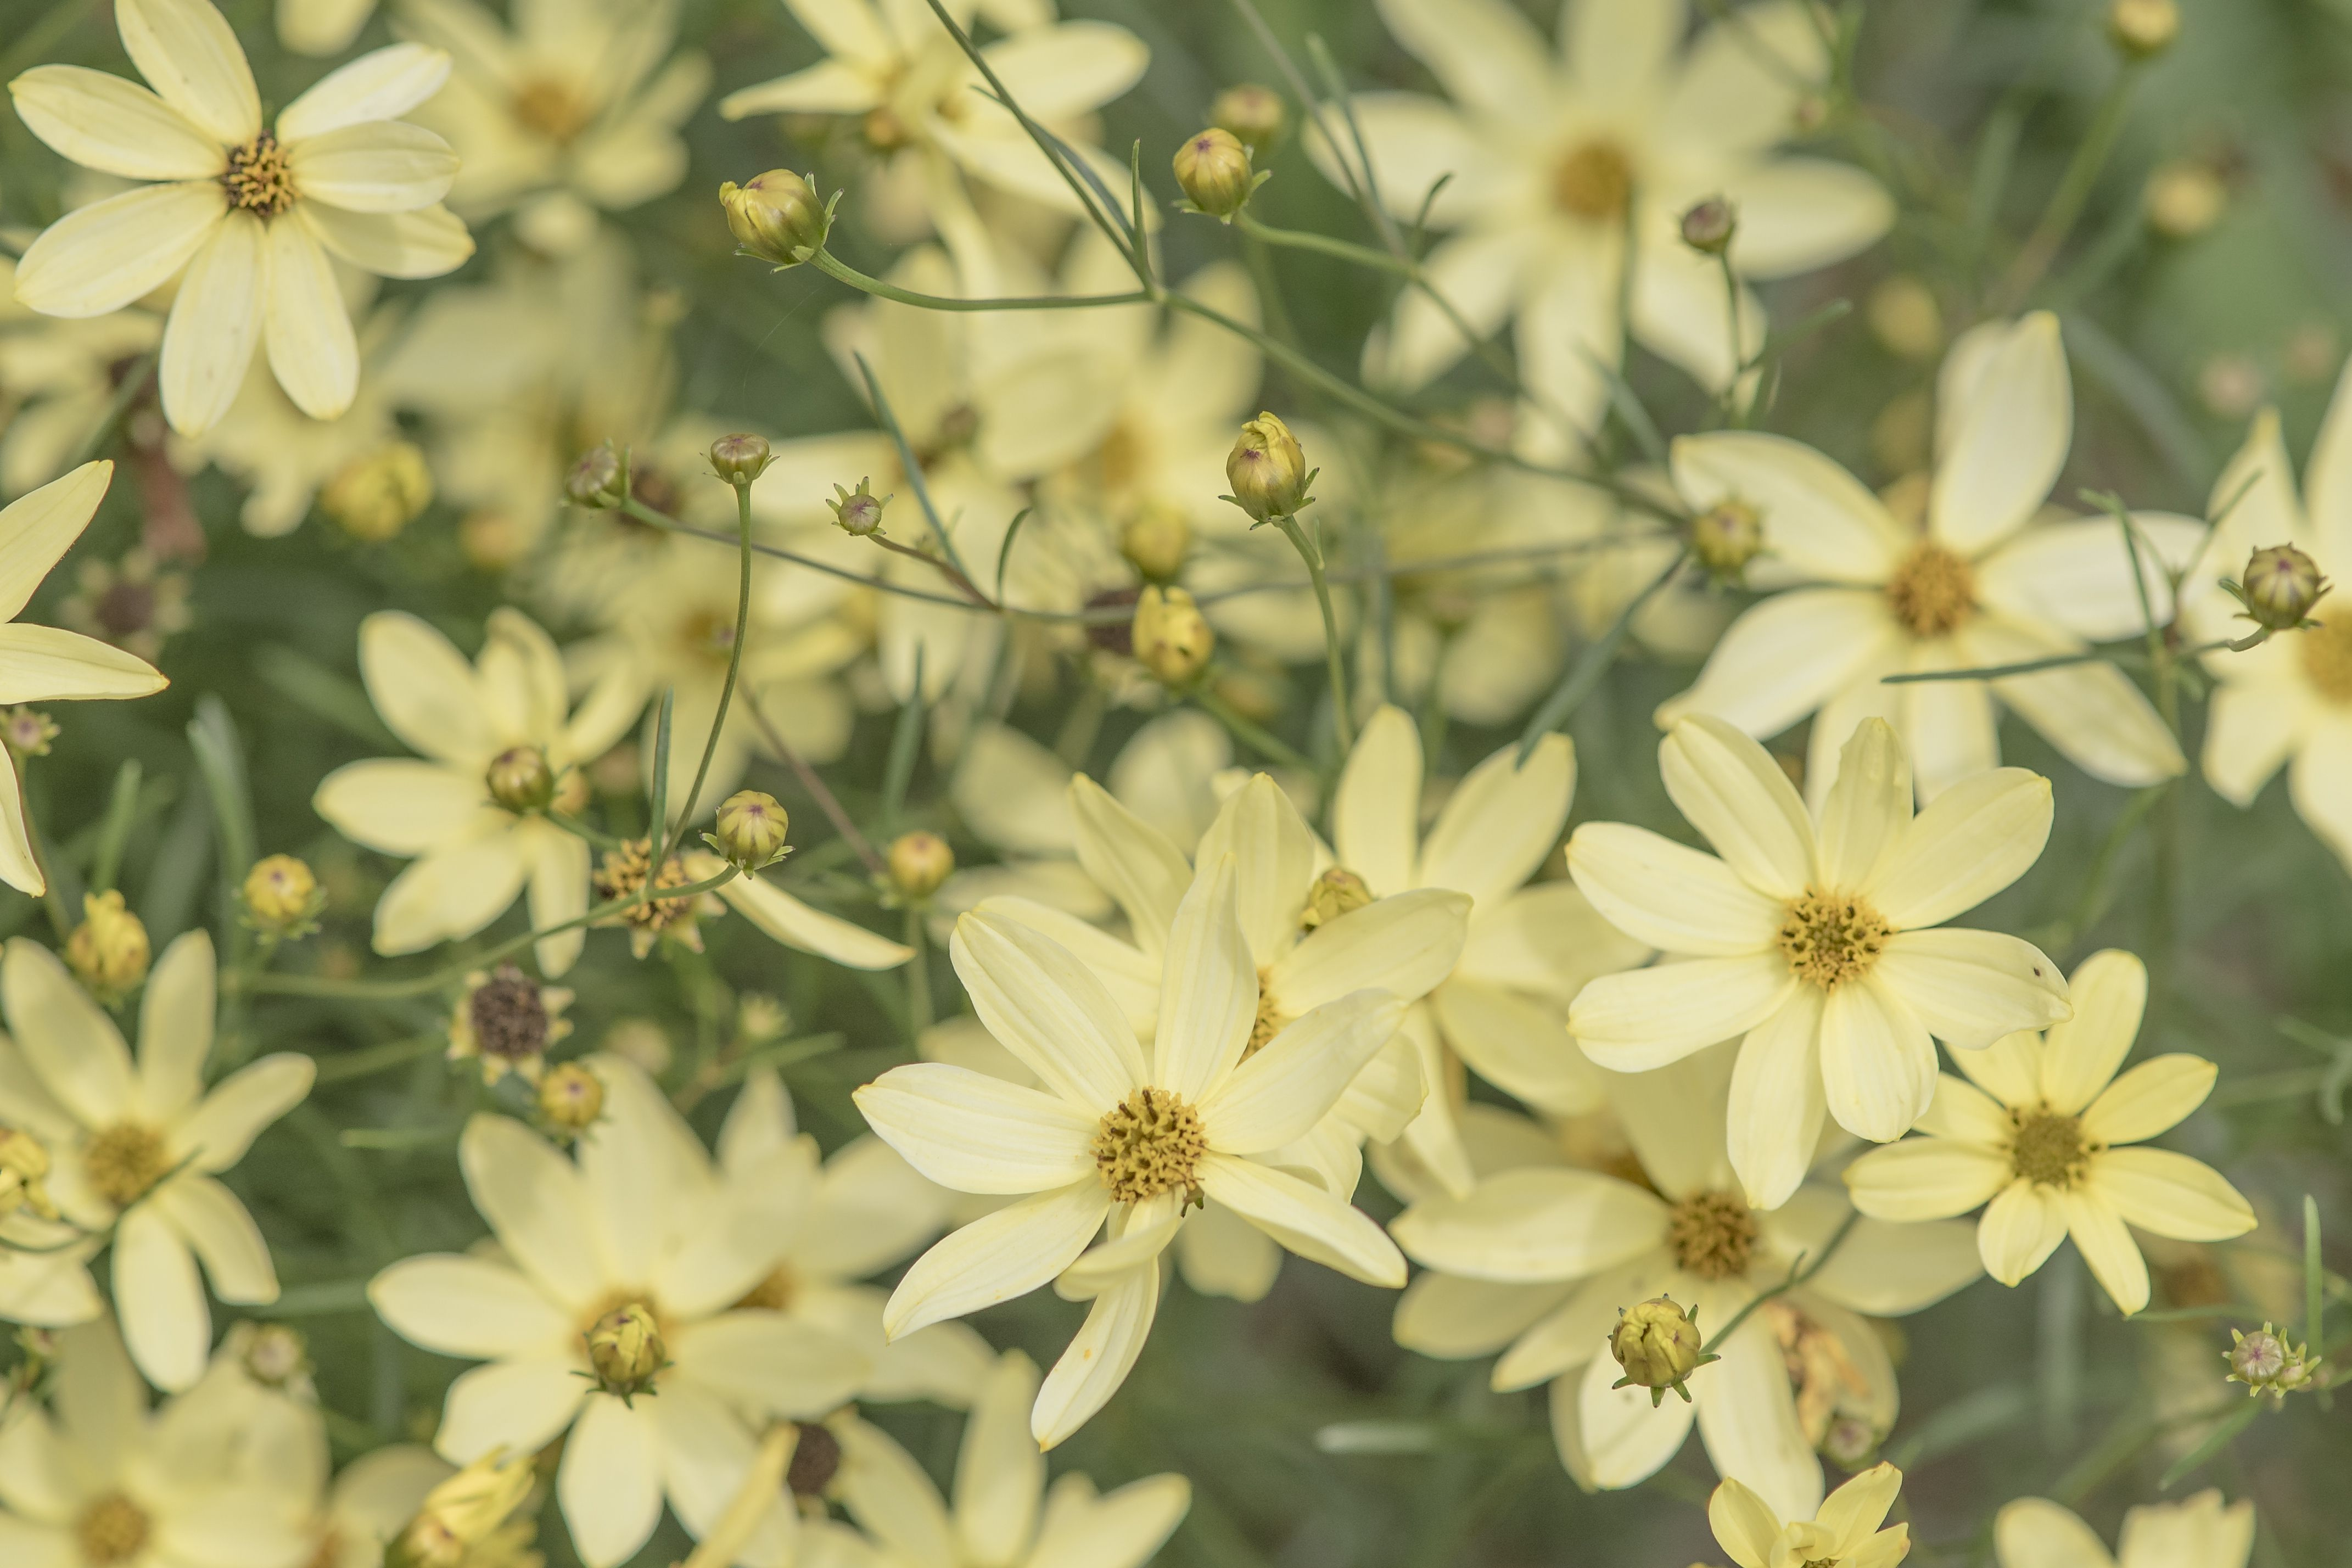 'Moonbeam' threadleaf coreopsis with yellow centers and petals